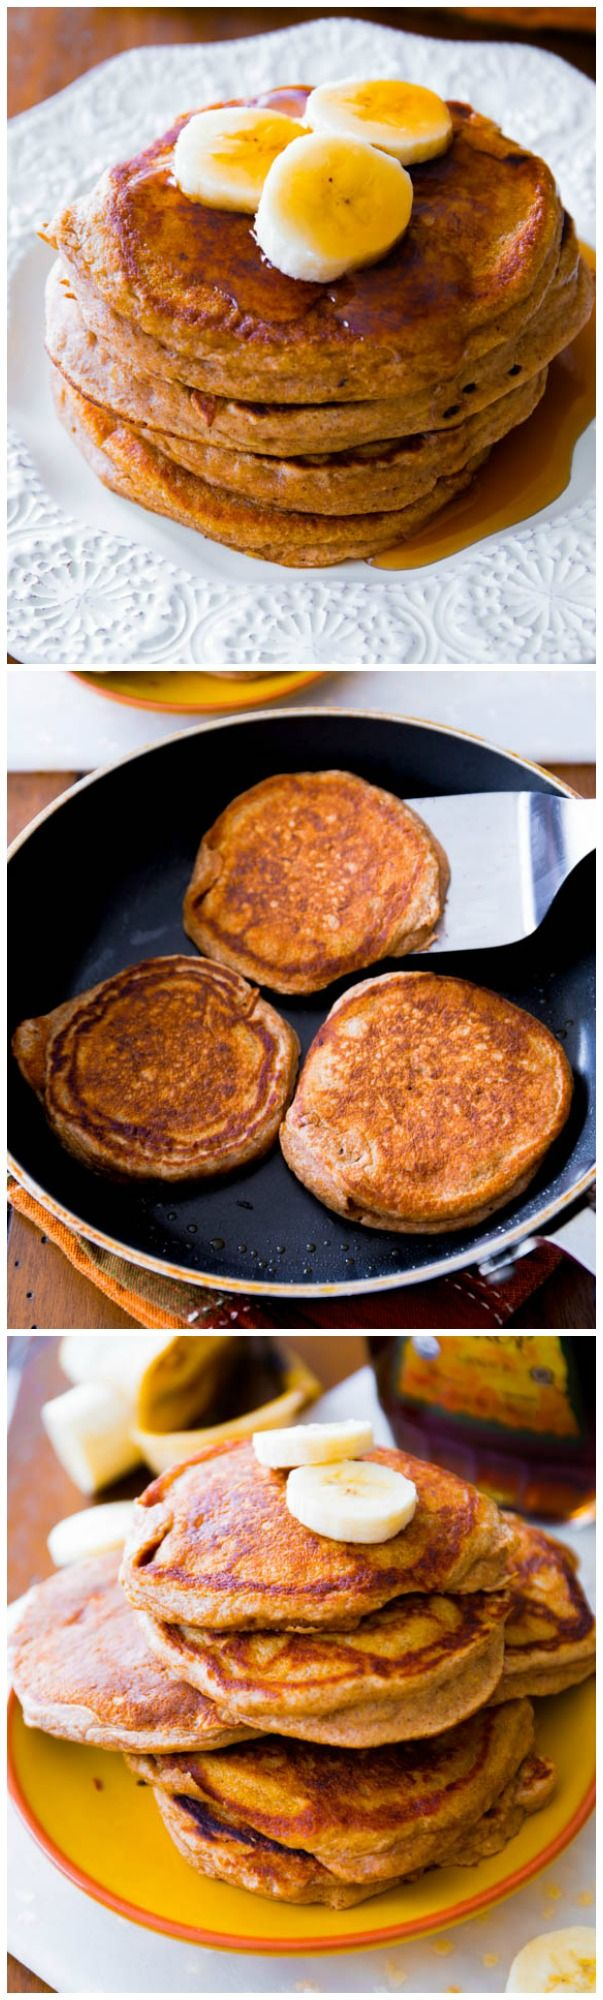 New Years resolution friendly Banana Pancakes! These are whole wheat and made with wholesome ingredients.